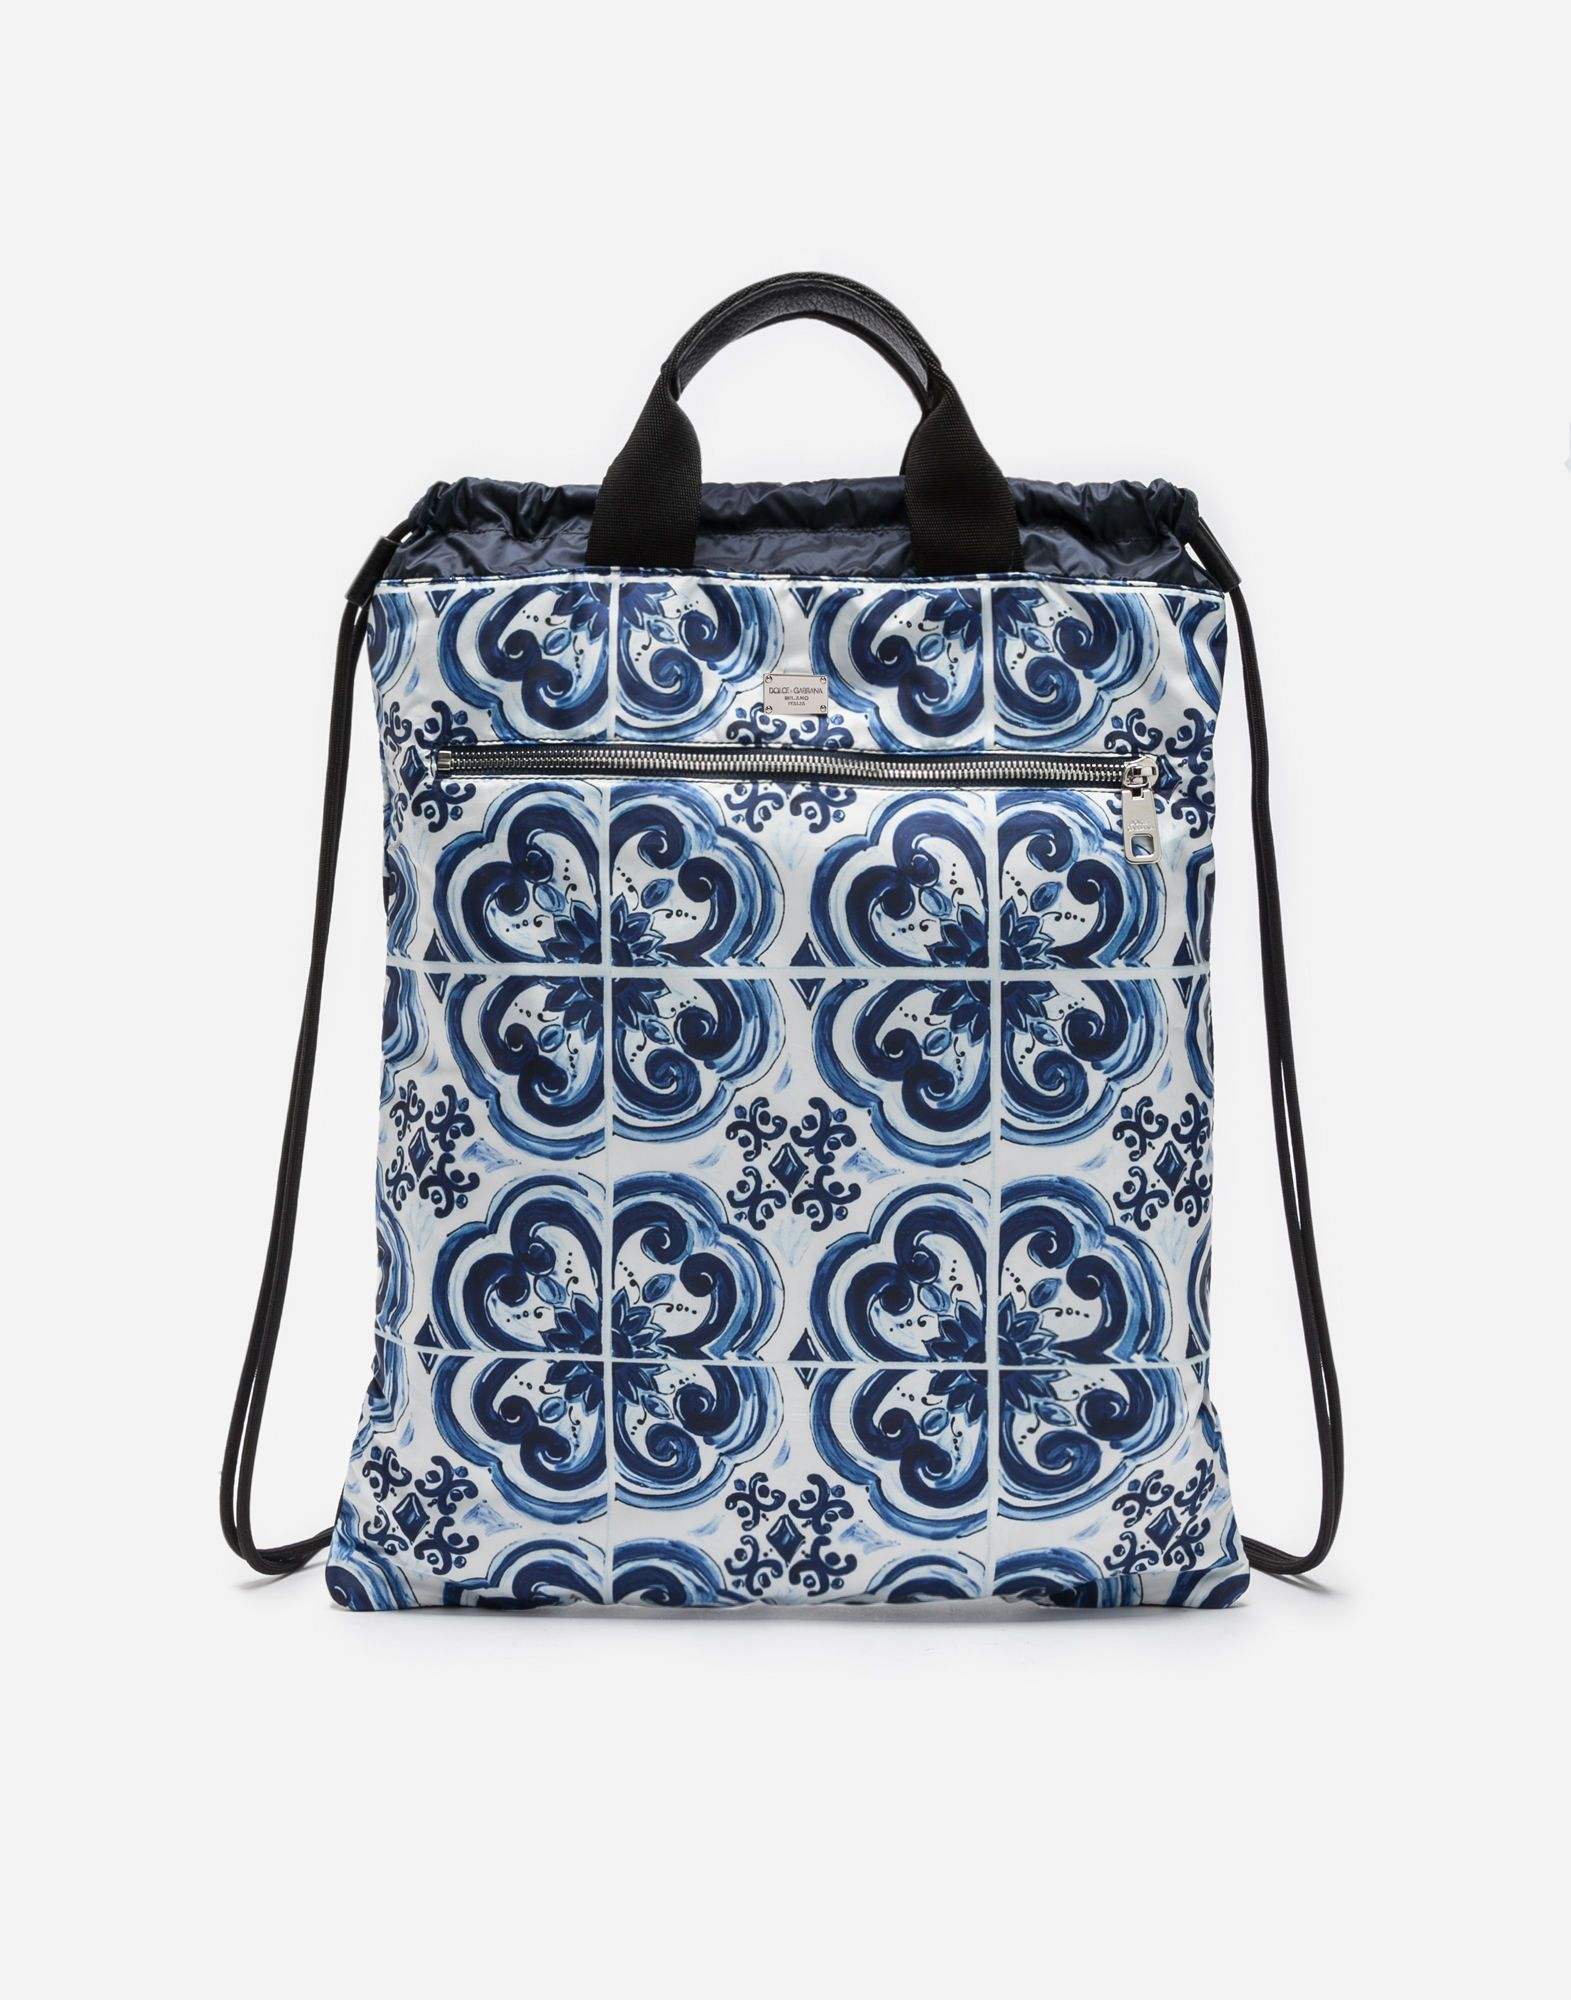 DOLCE   GABBANA Printed Nylon Backpack With Drawstring.  dolcegabbana  bags   leather  polyester  nylon  backpacks   96a0e4fec0995